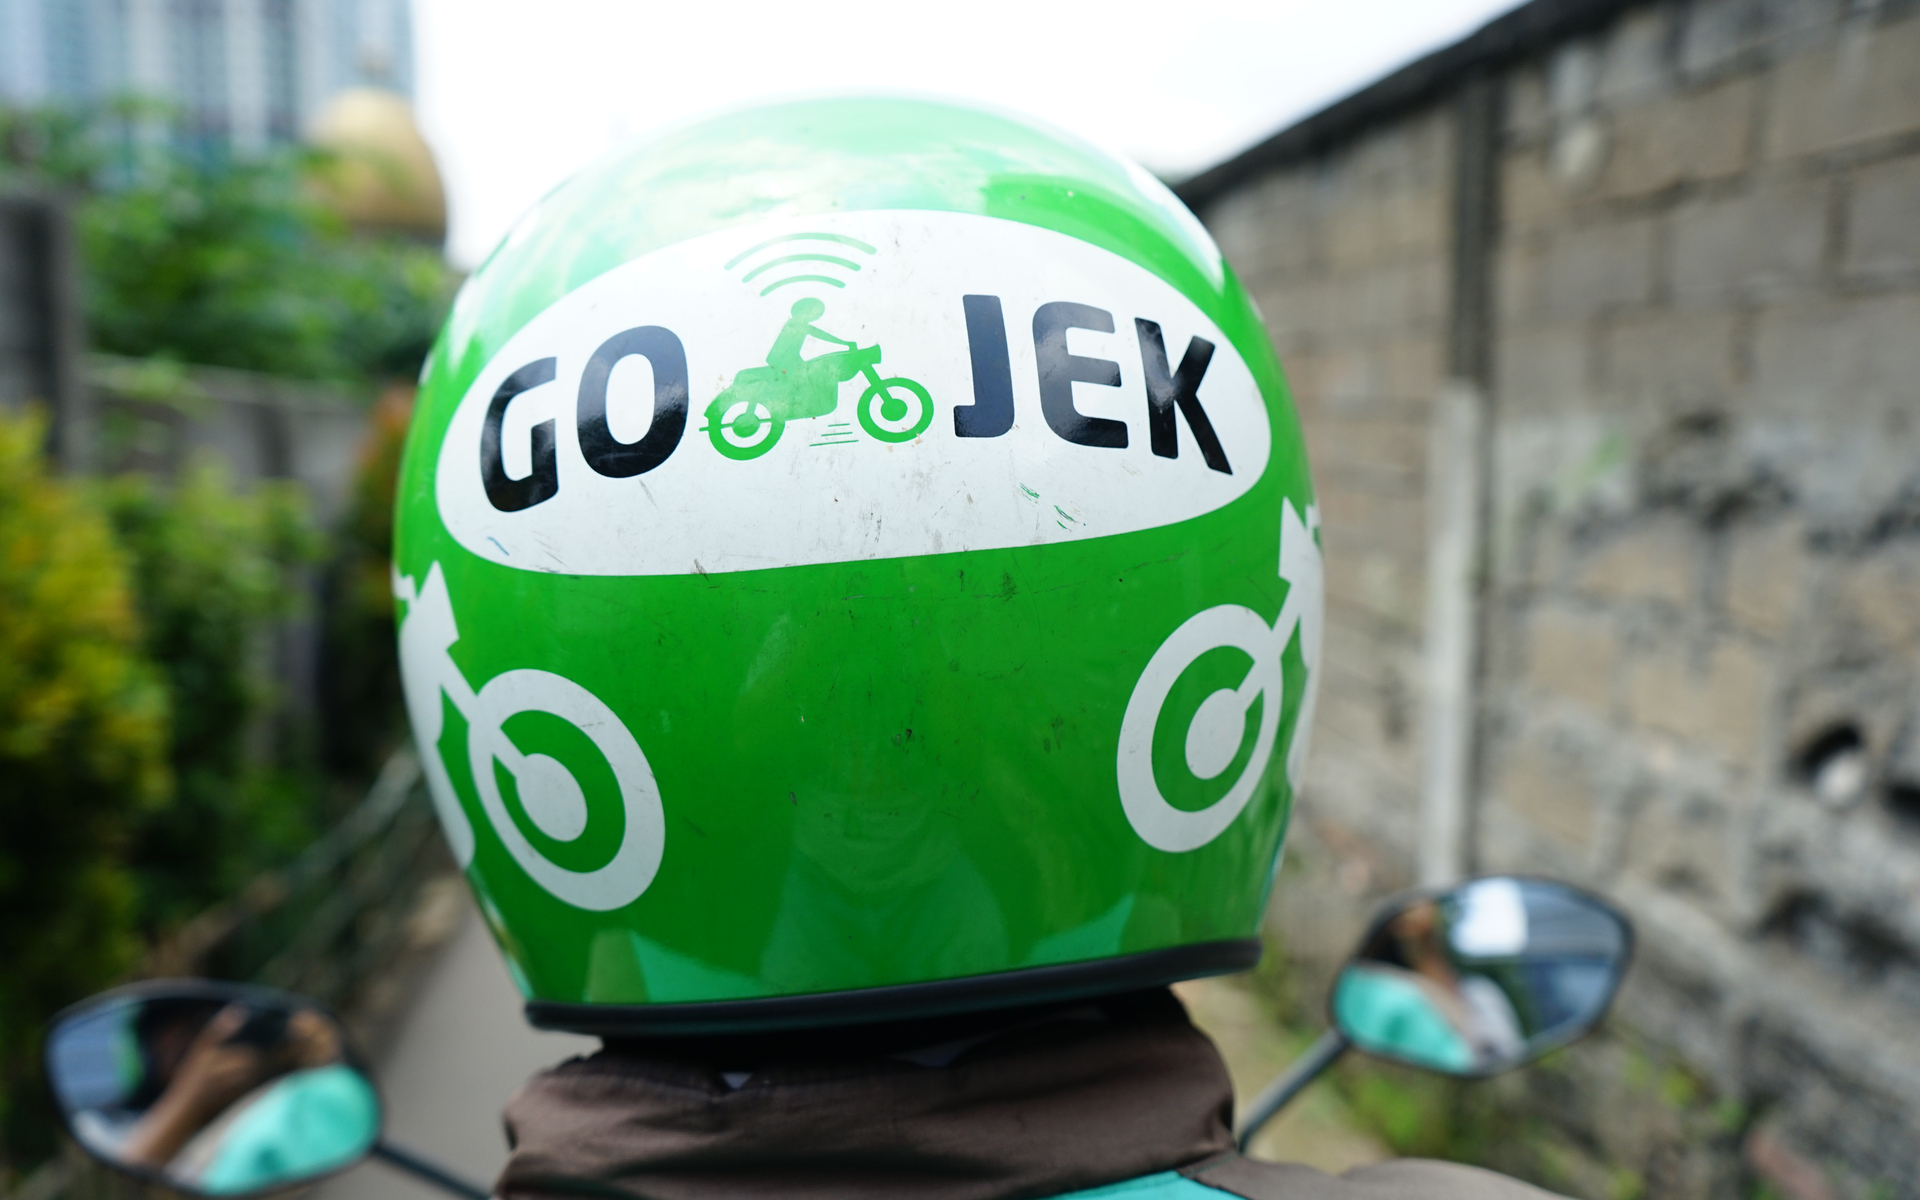 Indonesia's First Unicorn Go-Jek Buys Bitcoin Startup